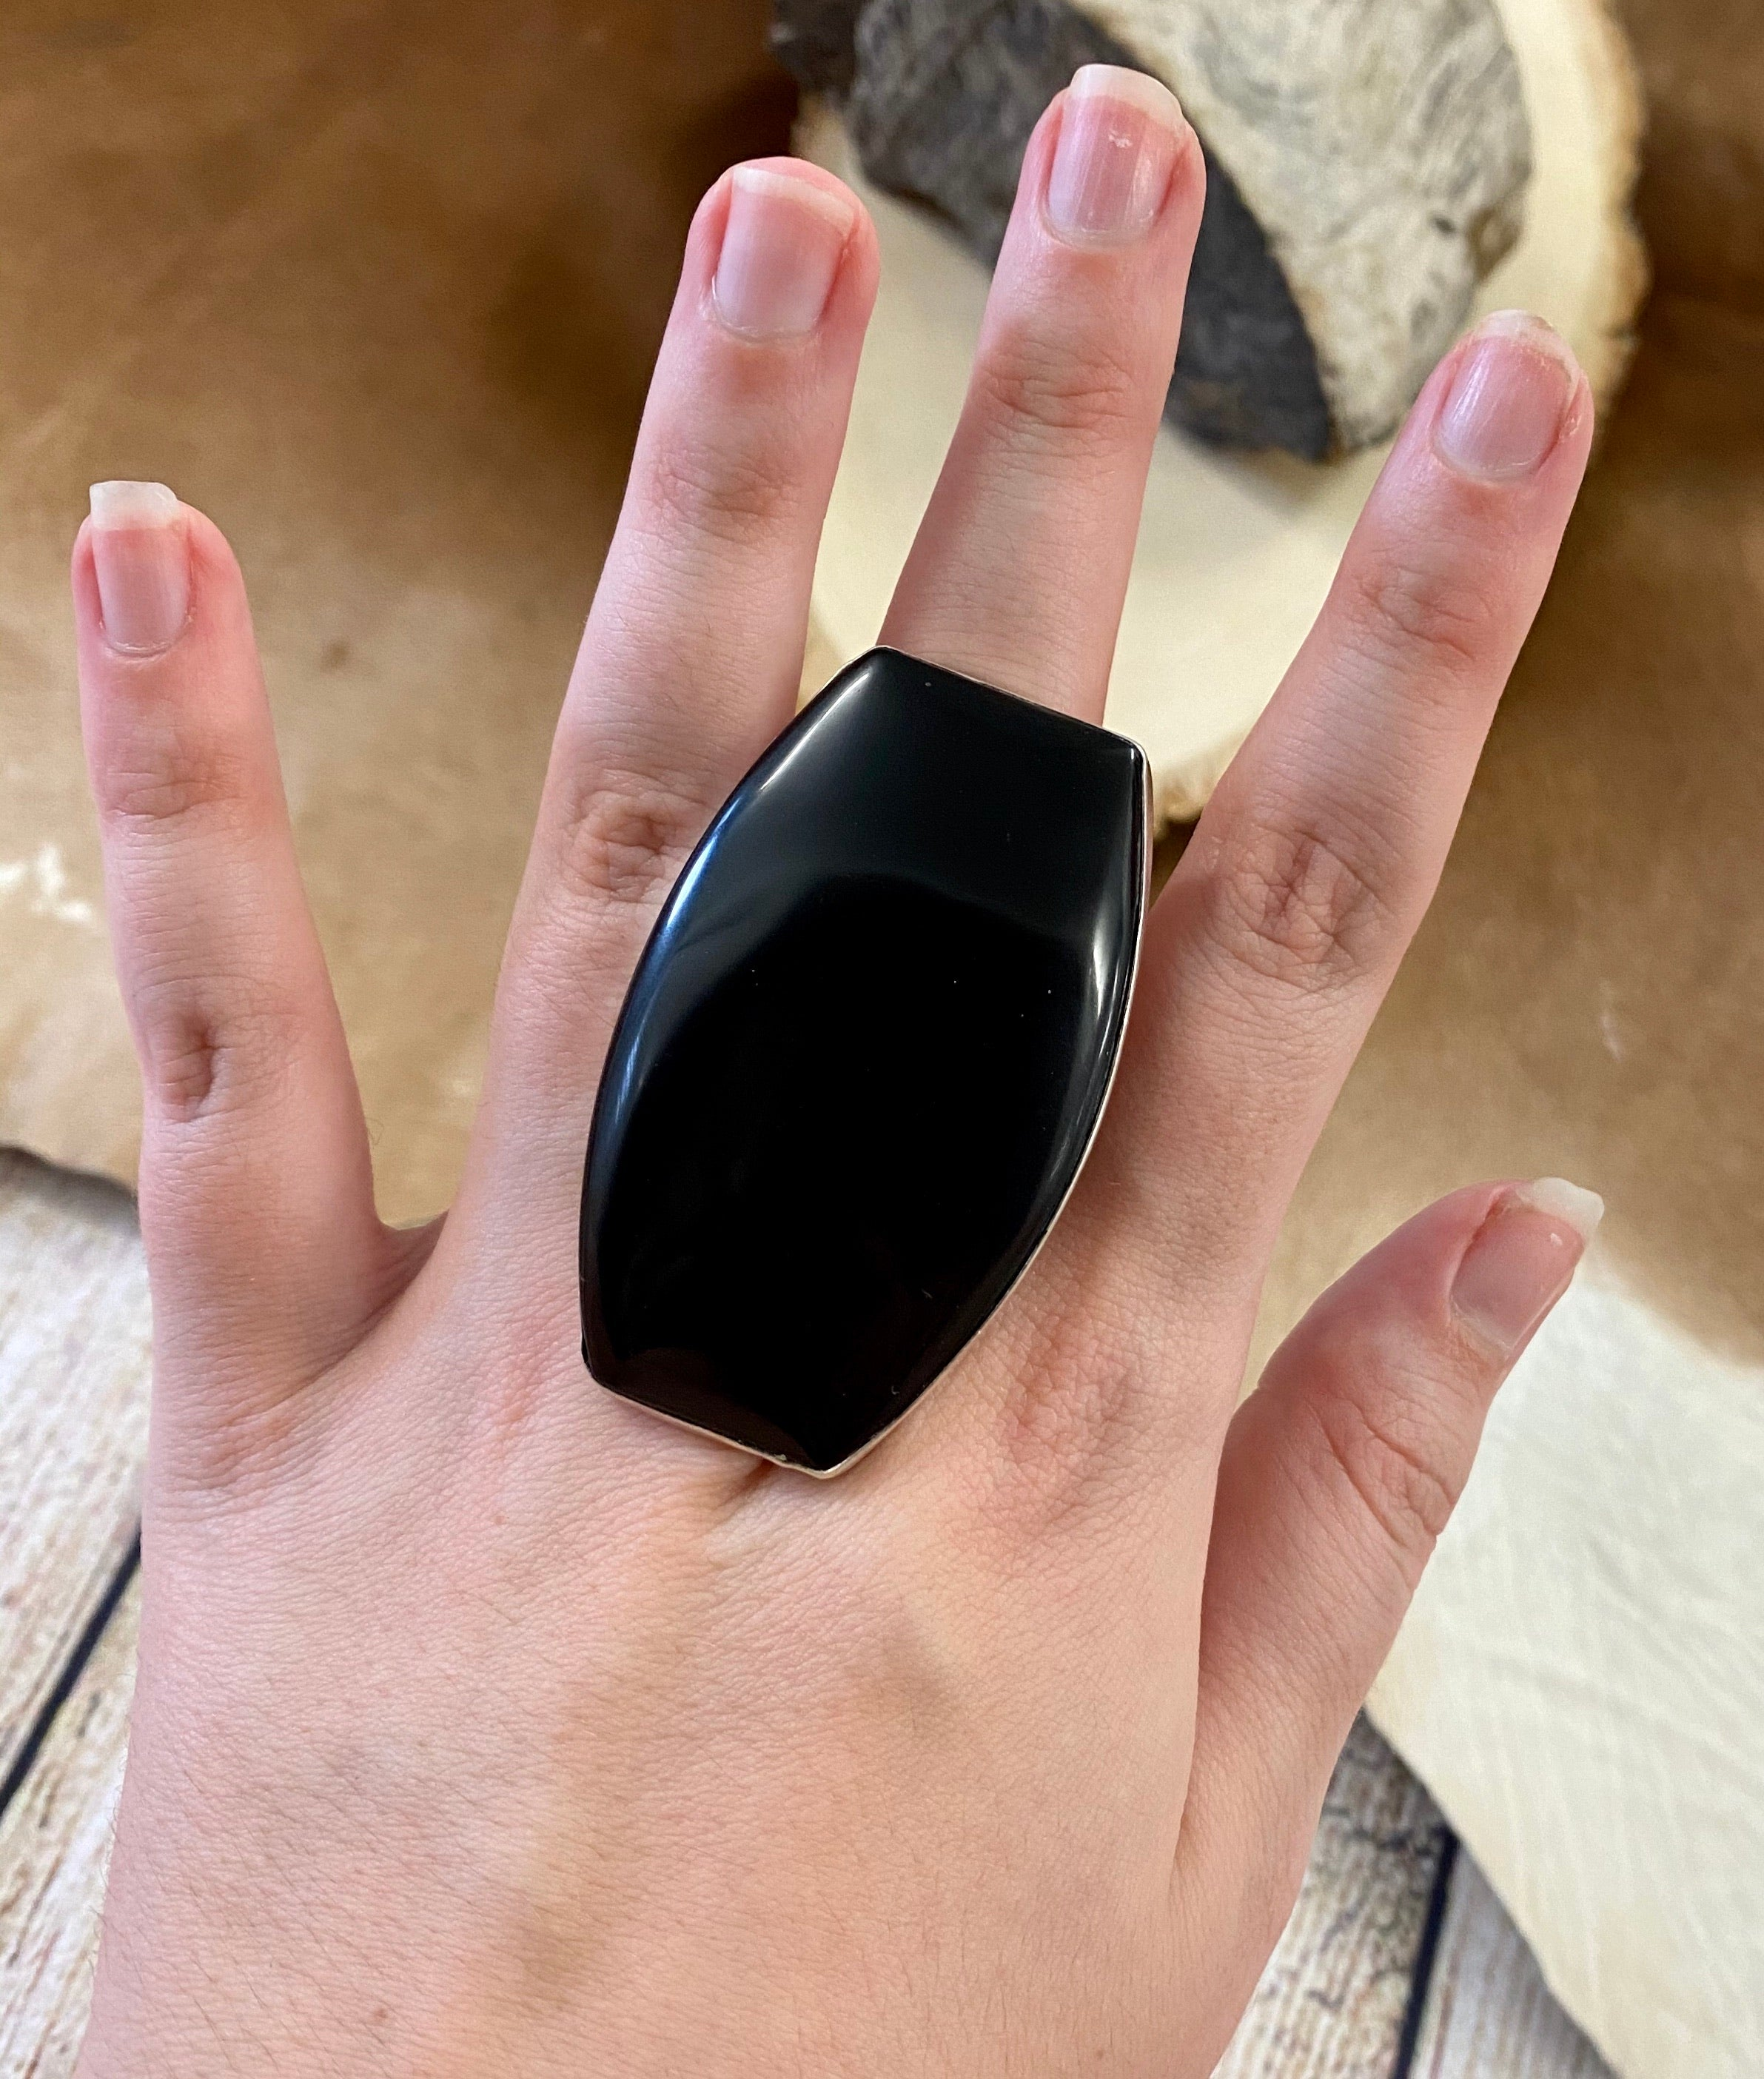 The Huge Onyx JG Ring